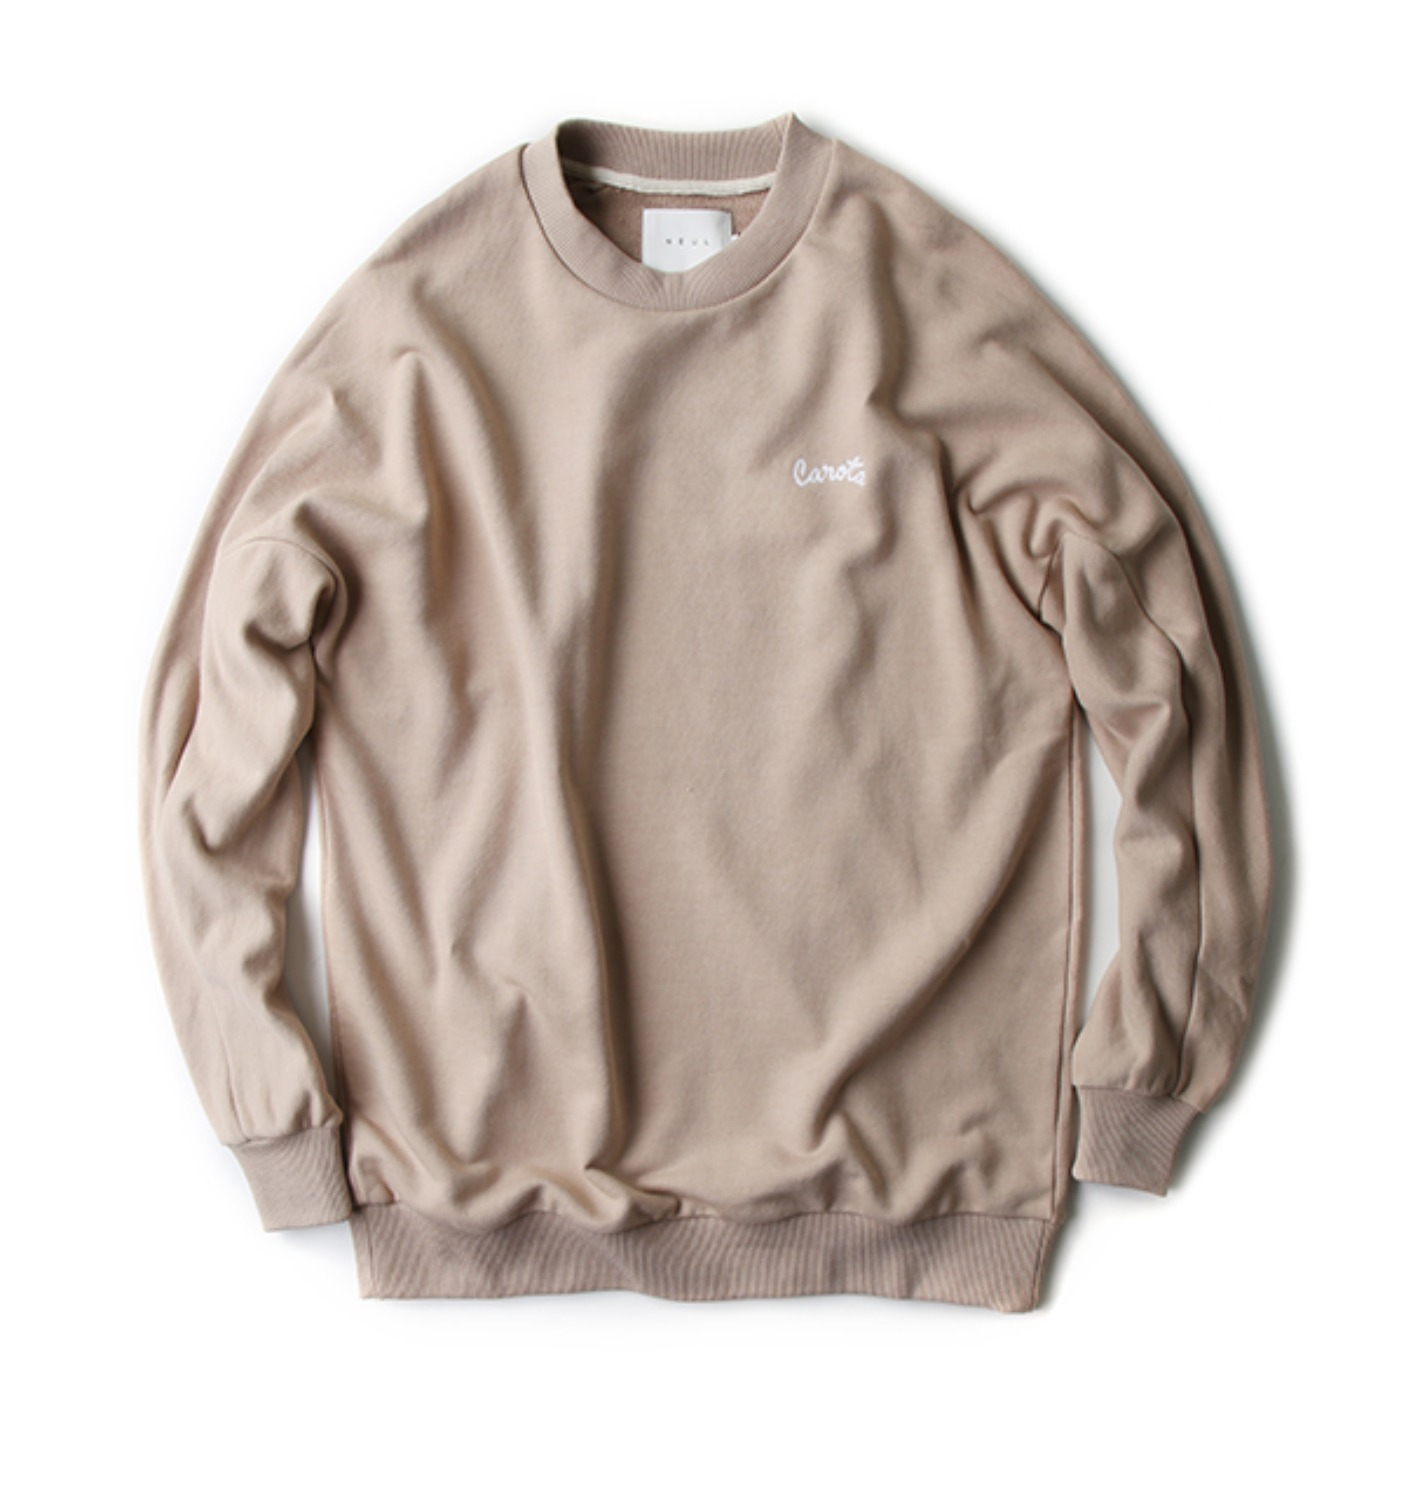 VEGETABLE SWEATSHIRT BEIGE (NTS02001A)